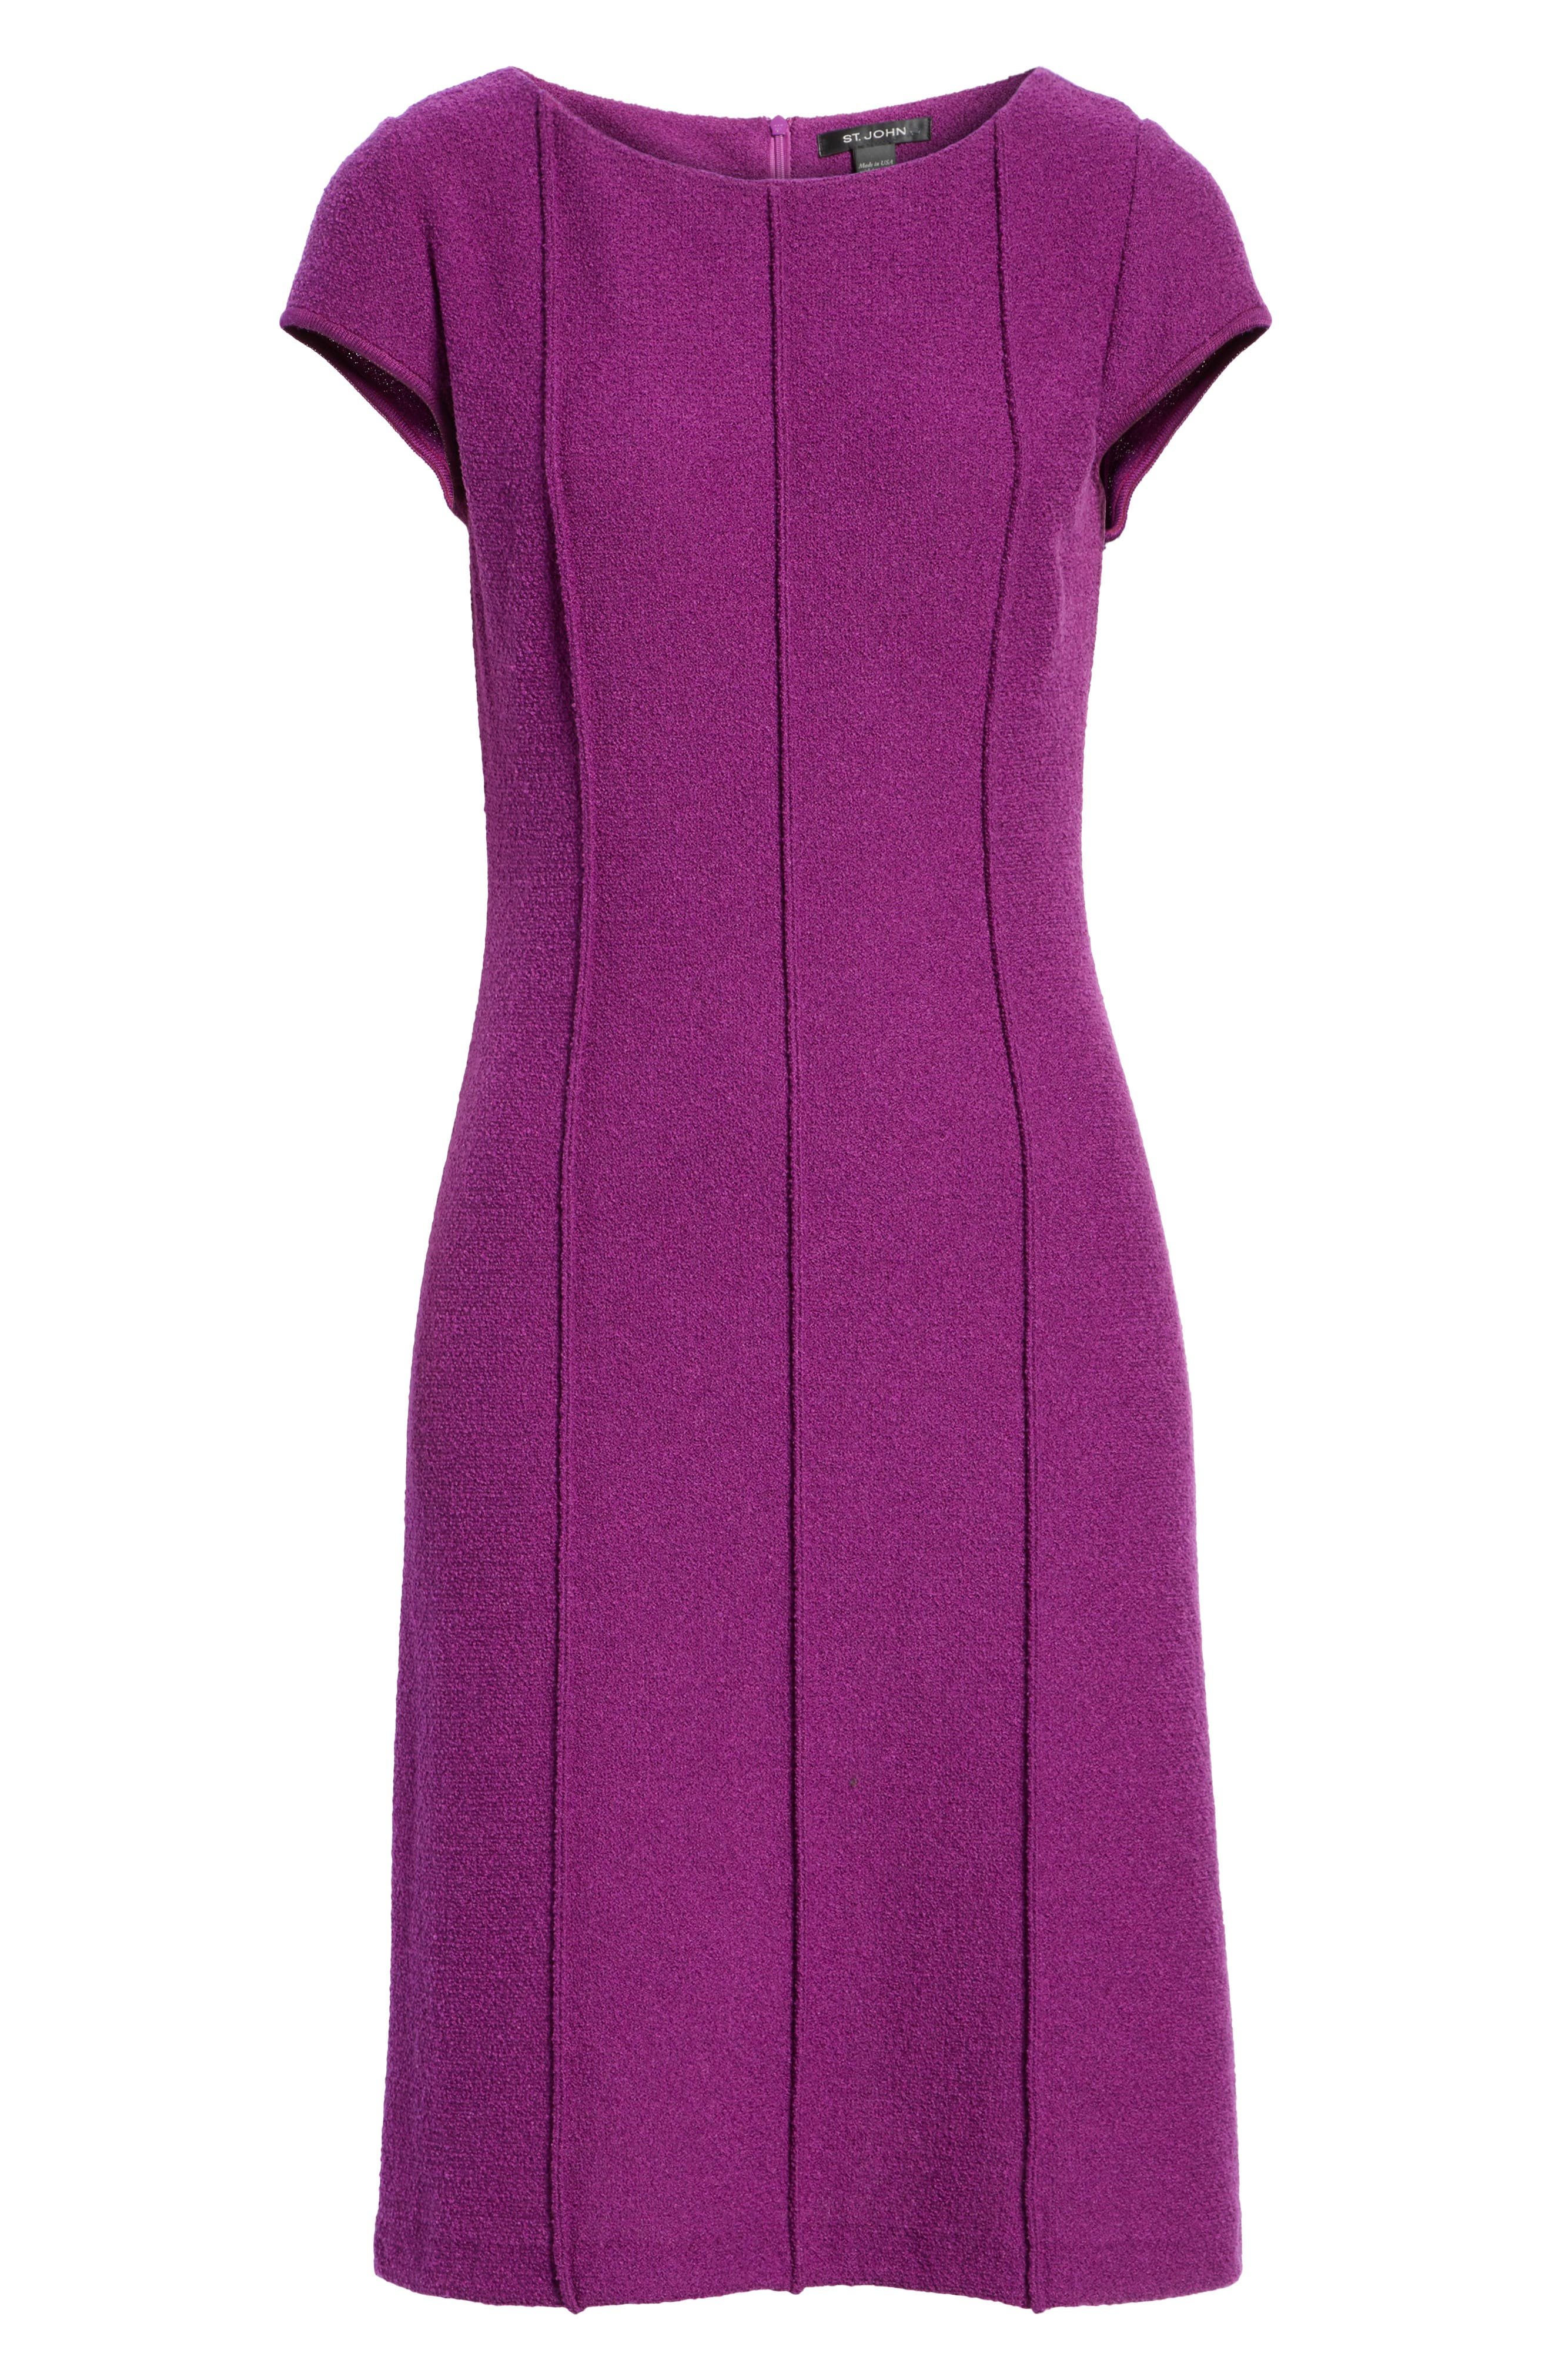 ST. JOHN COLLECTION, Ana Bouclé Knit Dress, Alternate thumbnail 6, color, IRIS